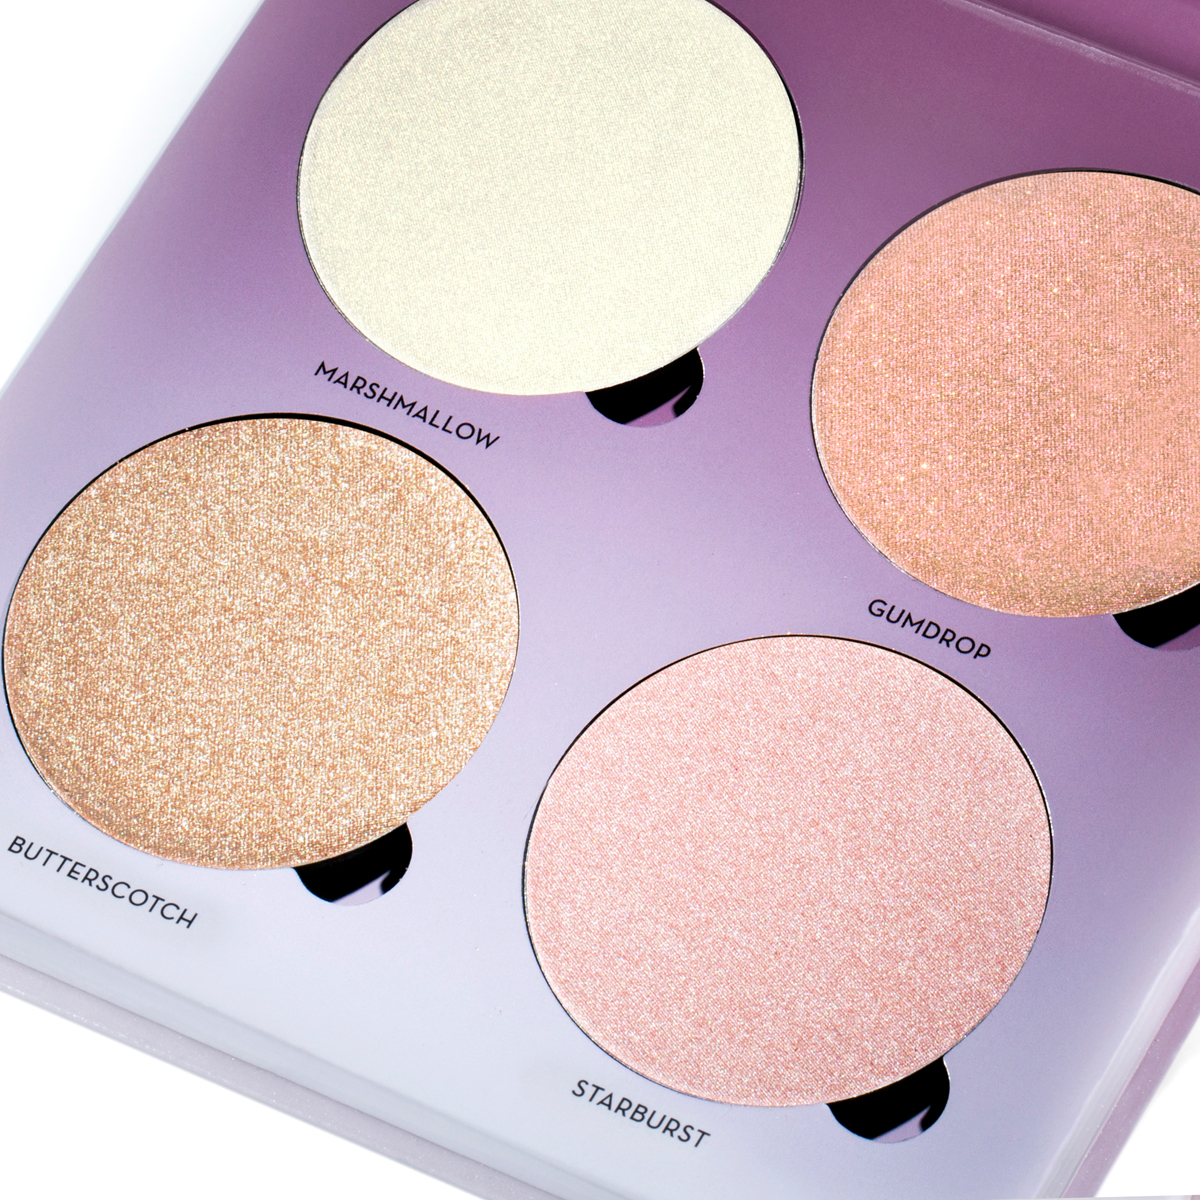 Anastasia Sugar Glow Kit Beverly Hills